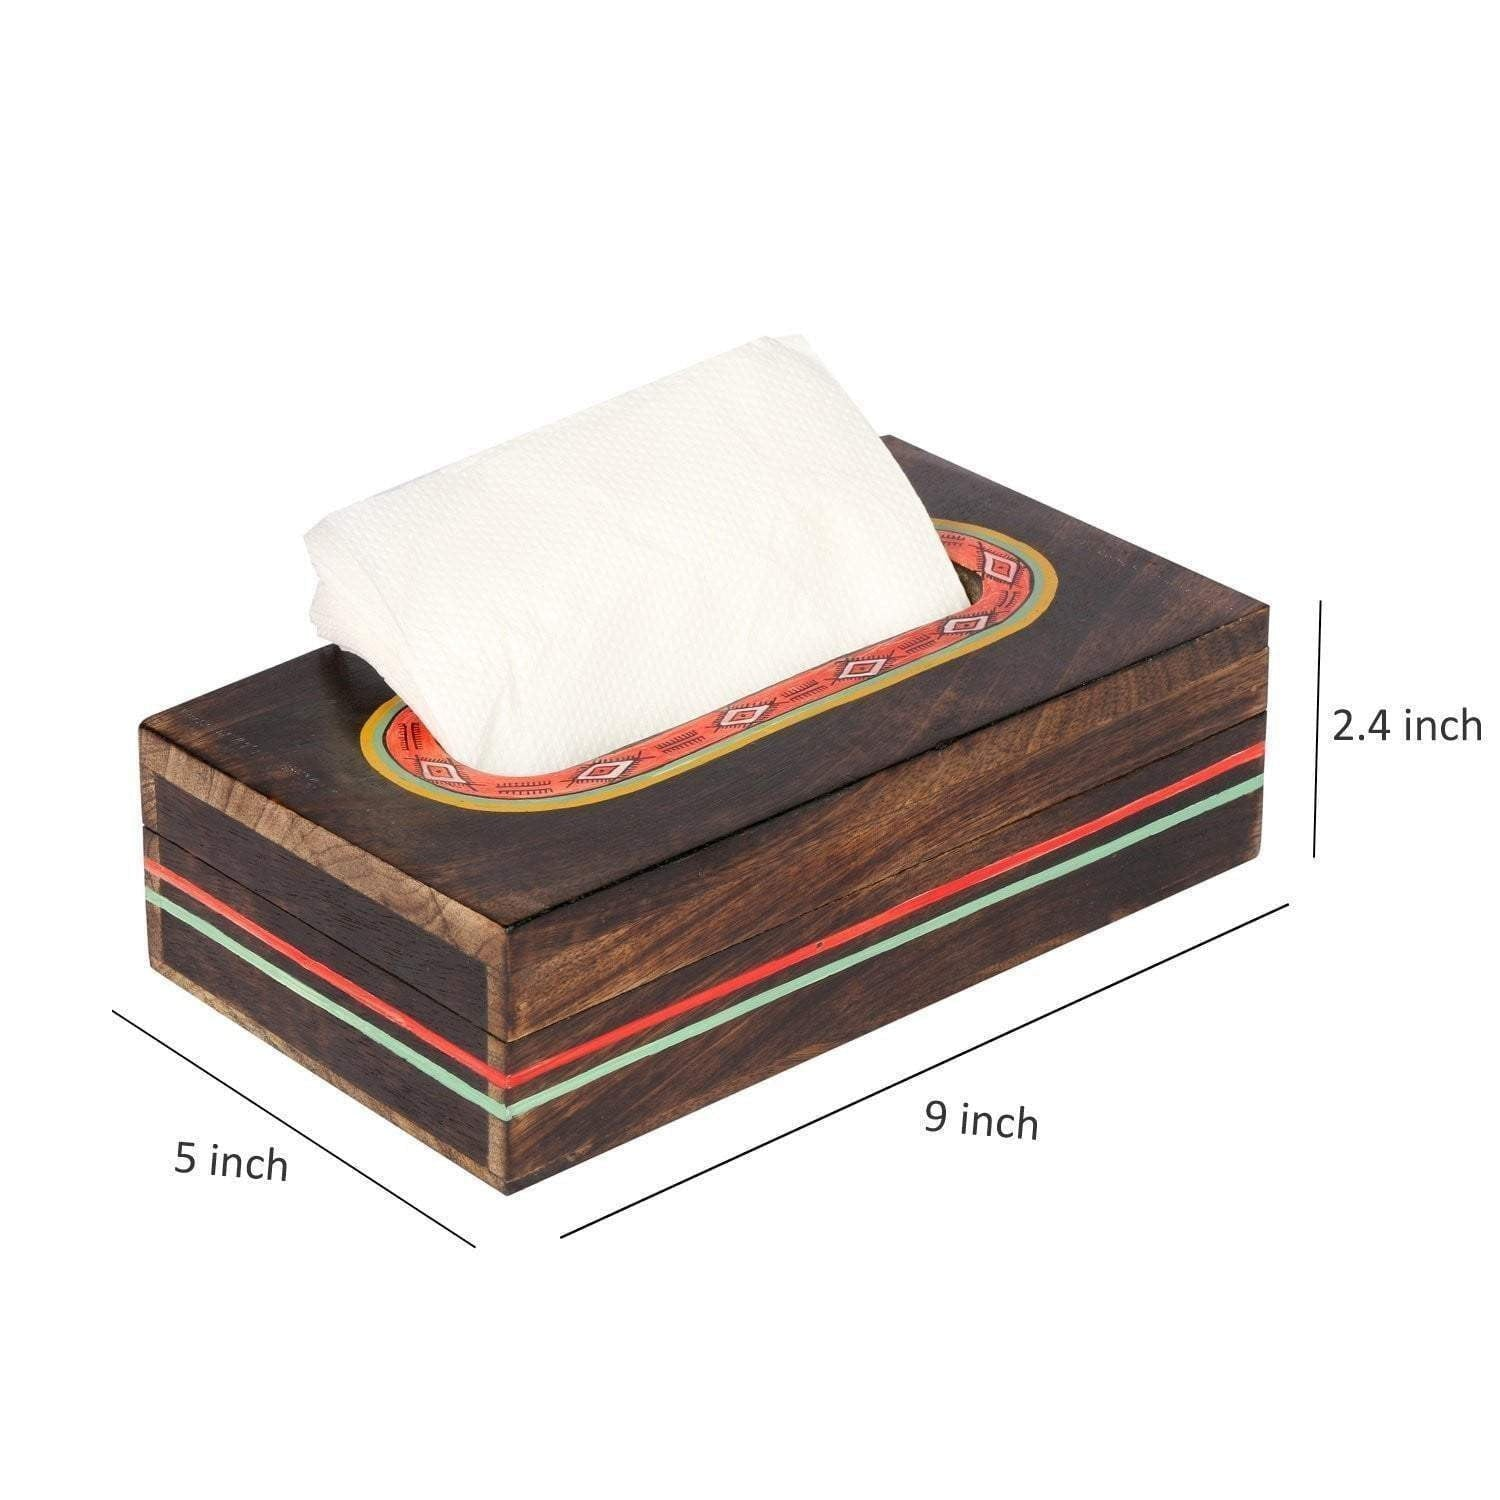 Handcrafted Rectangle Napkin Paper Holder With Warli Art